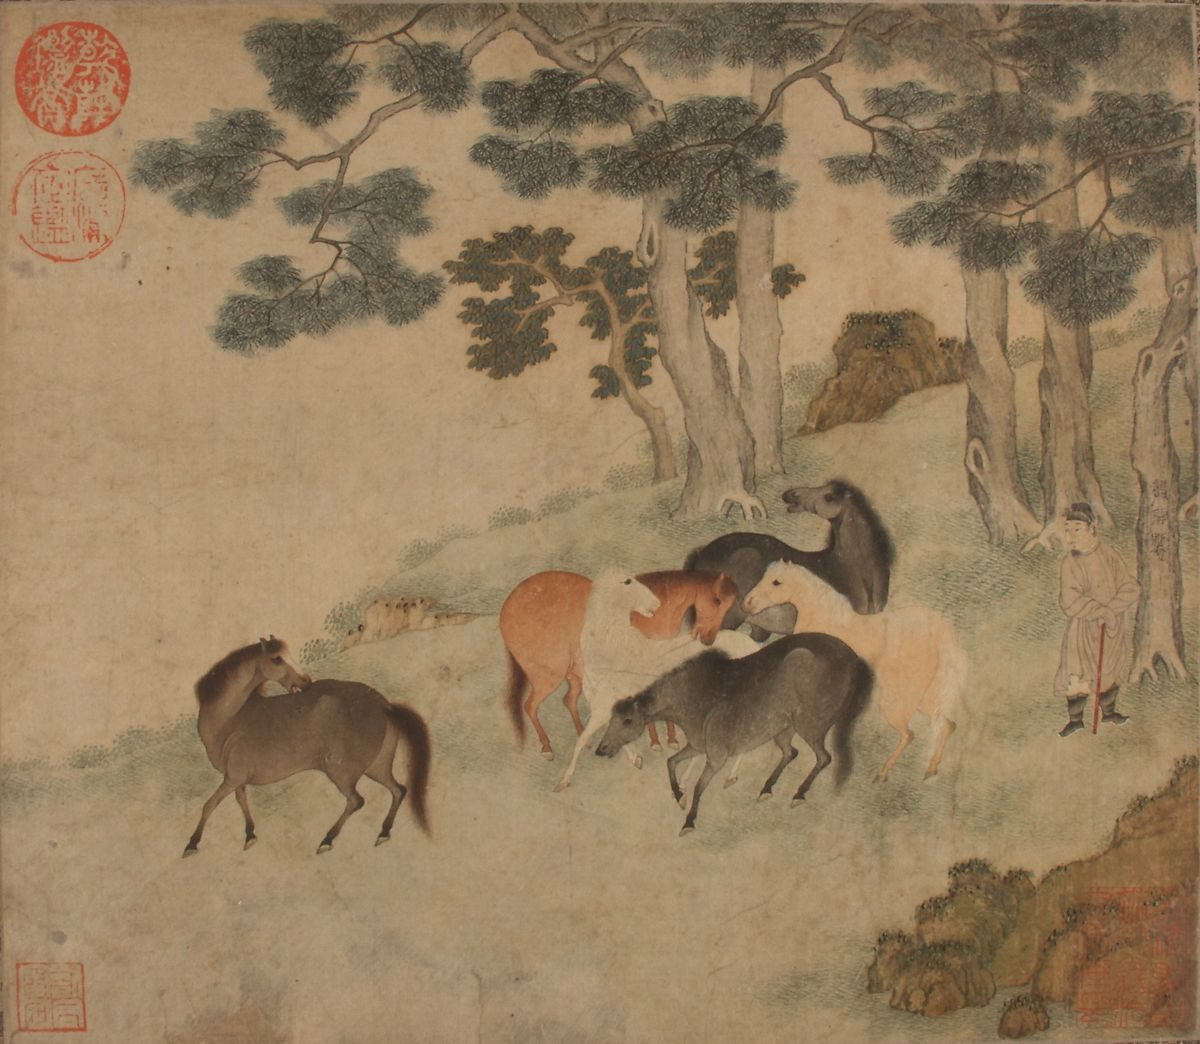 Unidentified Artist   Horses in Landscape with Attendant   China   Yuan dynasty (1271–1368)   The Met